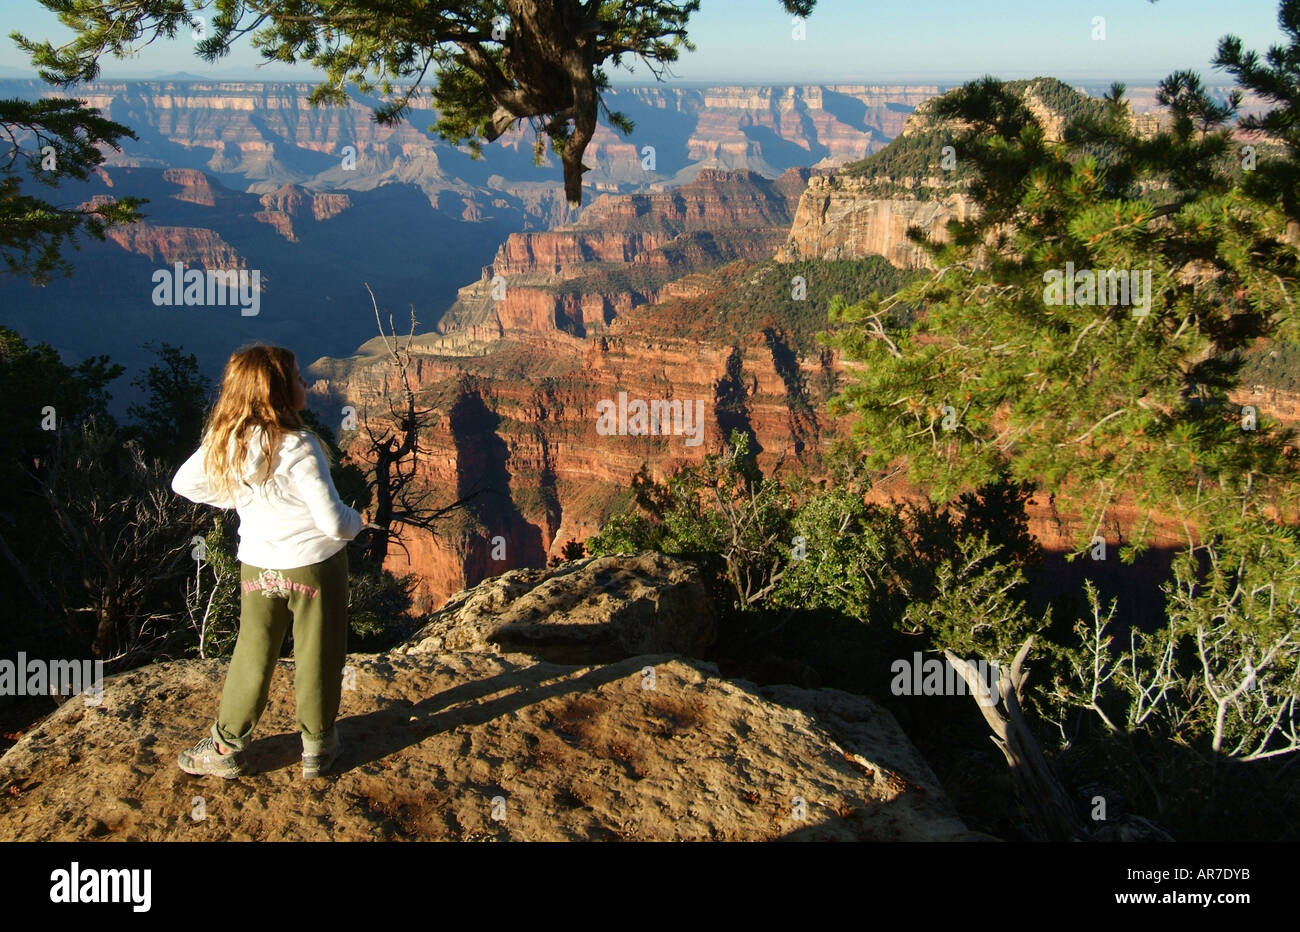 an-11-yr-old-girl-looks-out-into-the-grand-canyon-from-the-north-rim-AR7DYB.jpg